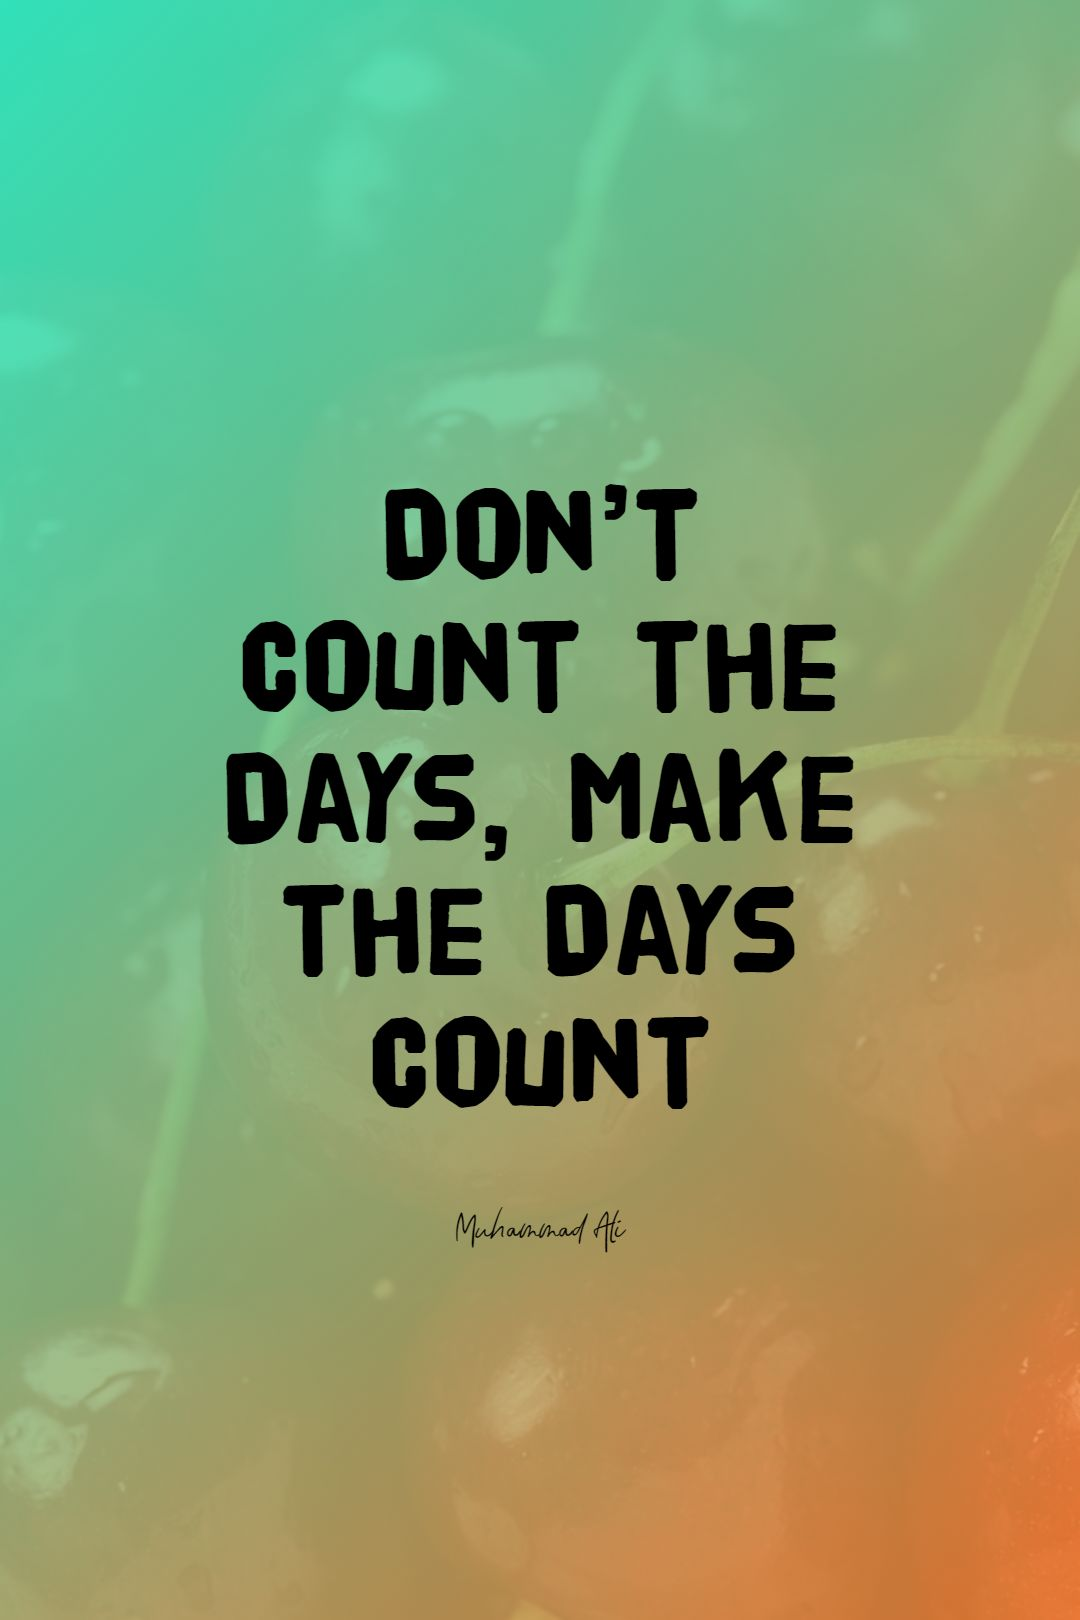 Quotes image of Don't Count the Days, Make the Days Count